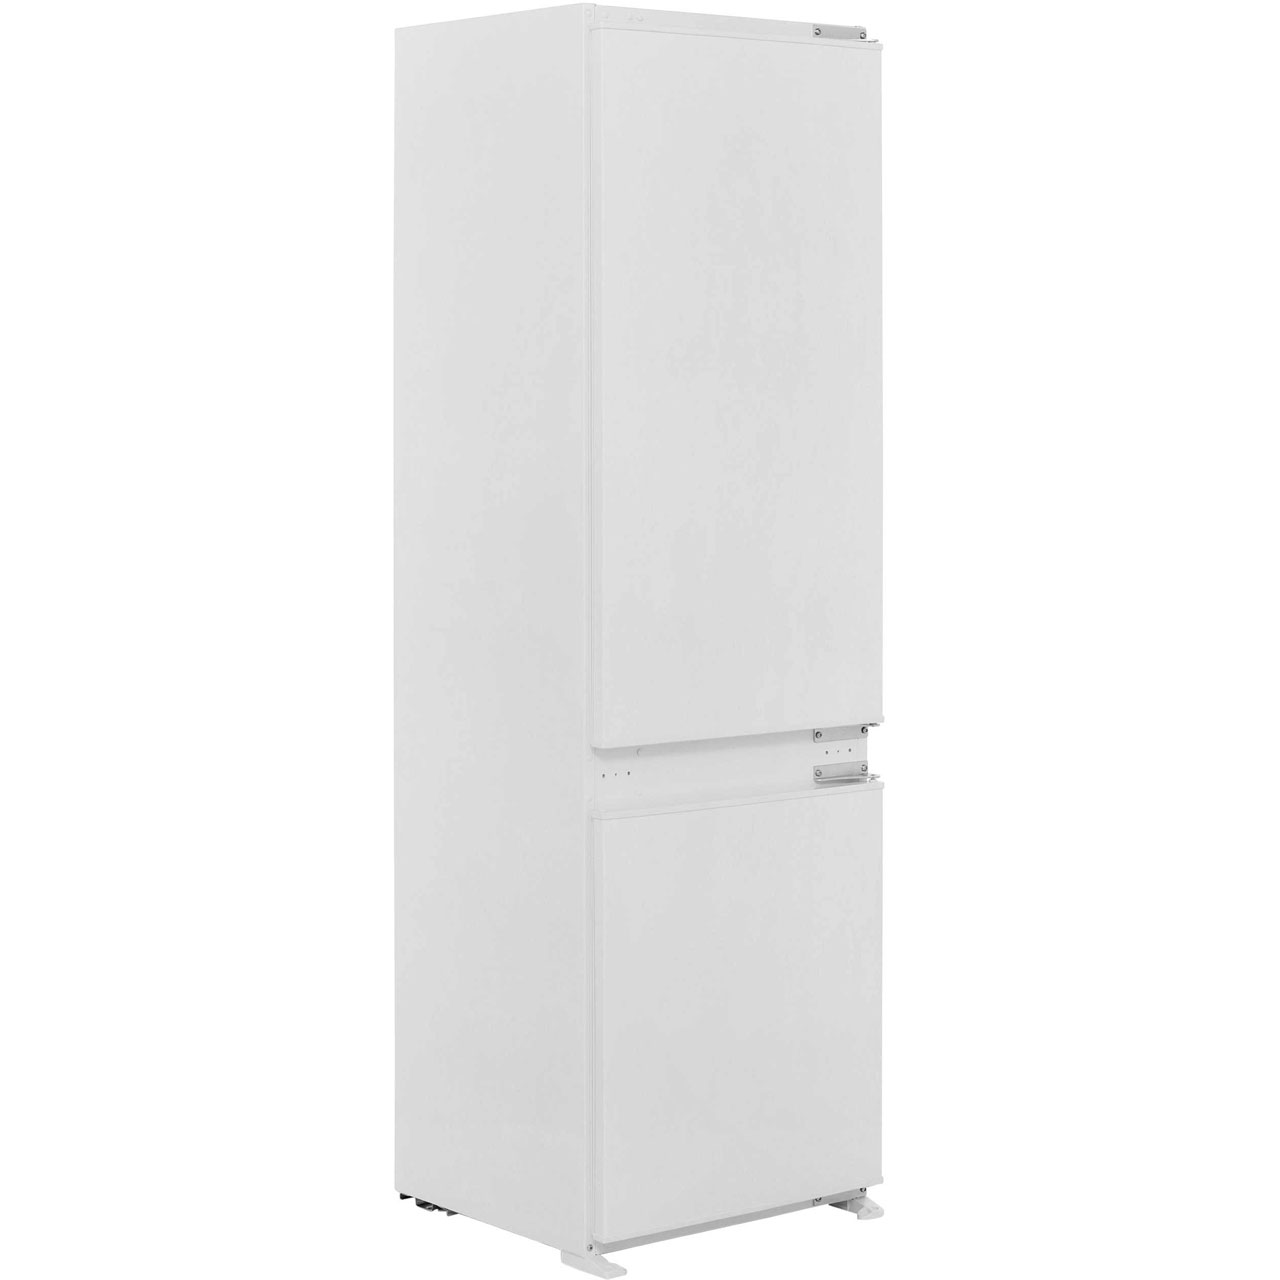 Beko BC73F Integrated 70/30 Frost Free Fridge Freezer - White